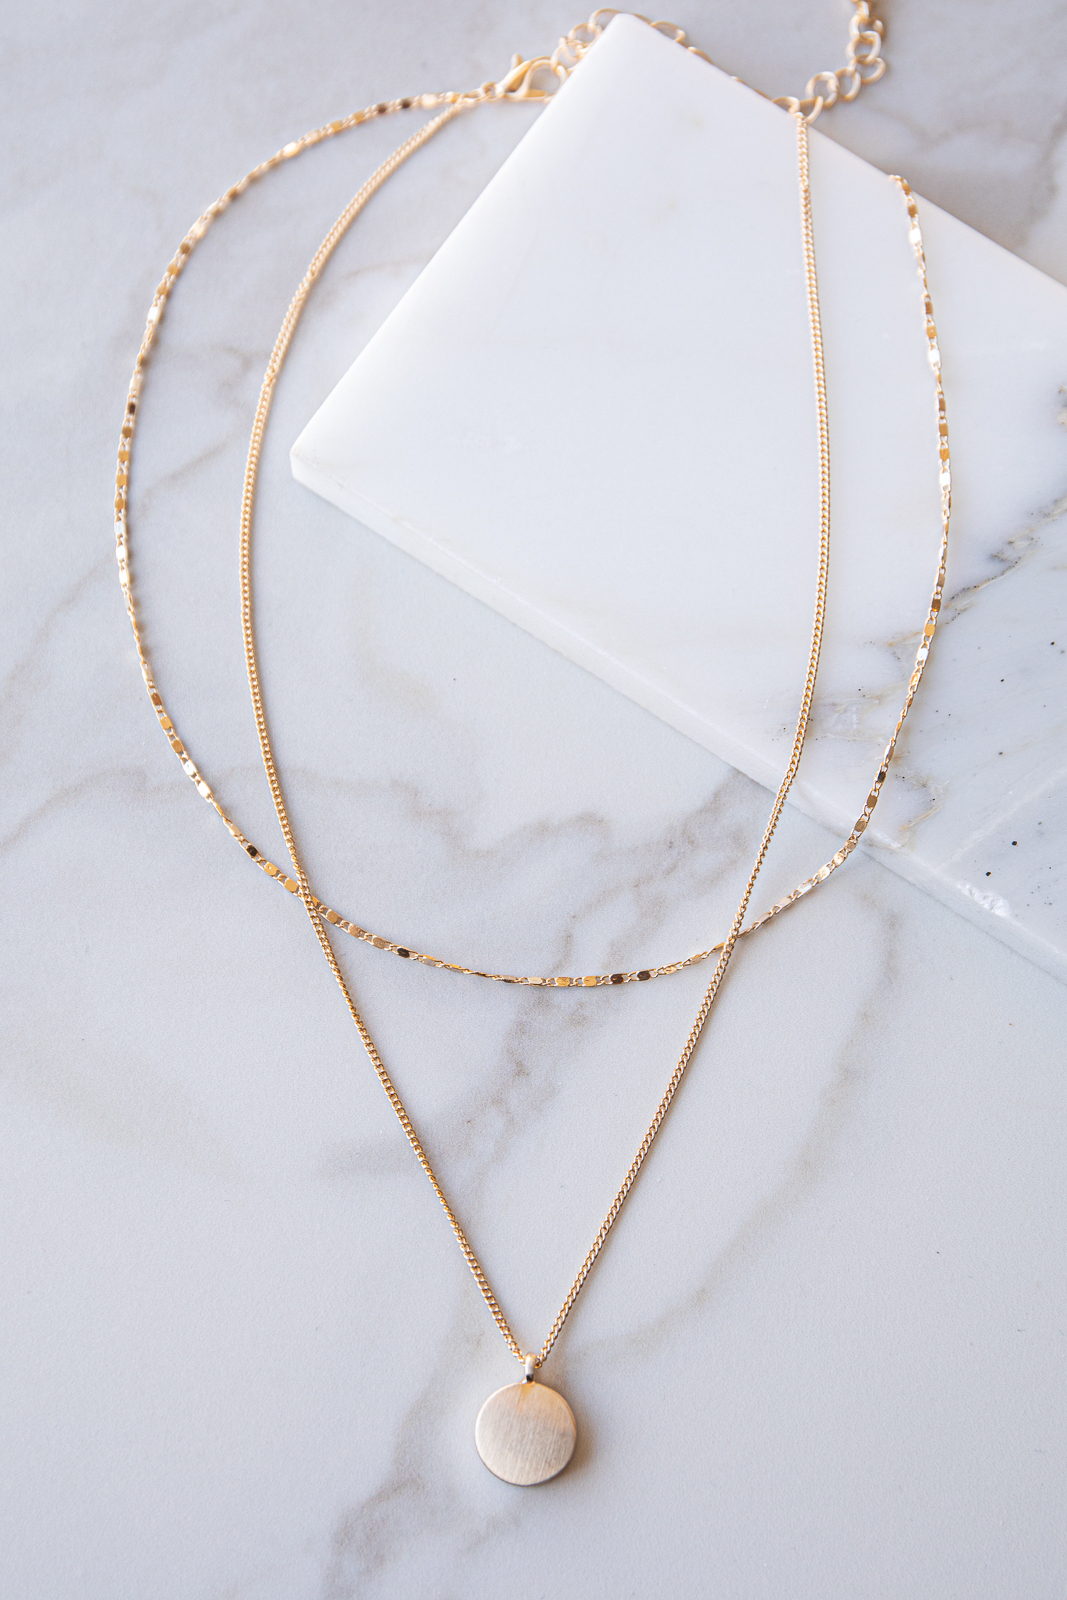 Gold Layered Dainty Chain with Brushed Metal Circle Pendant